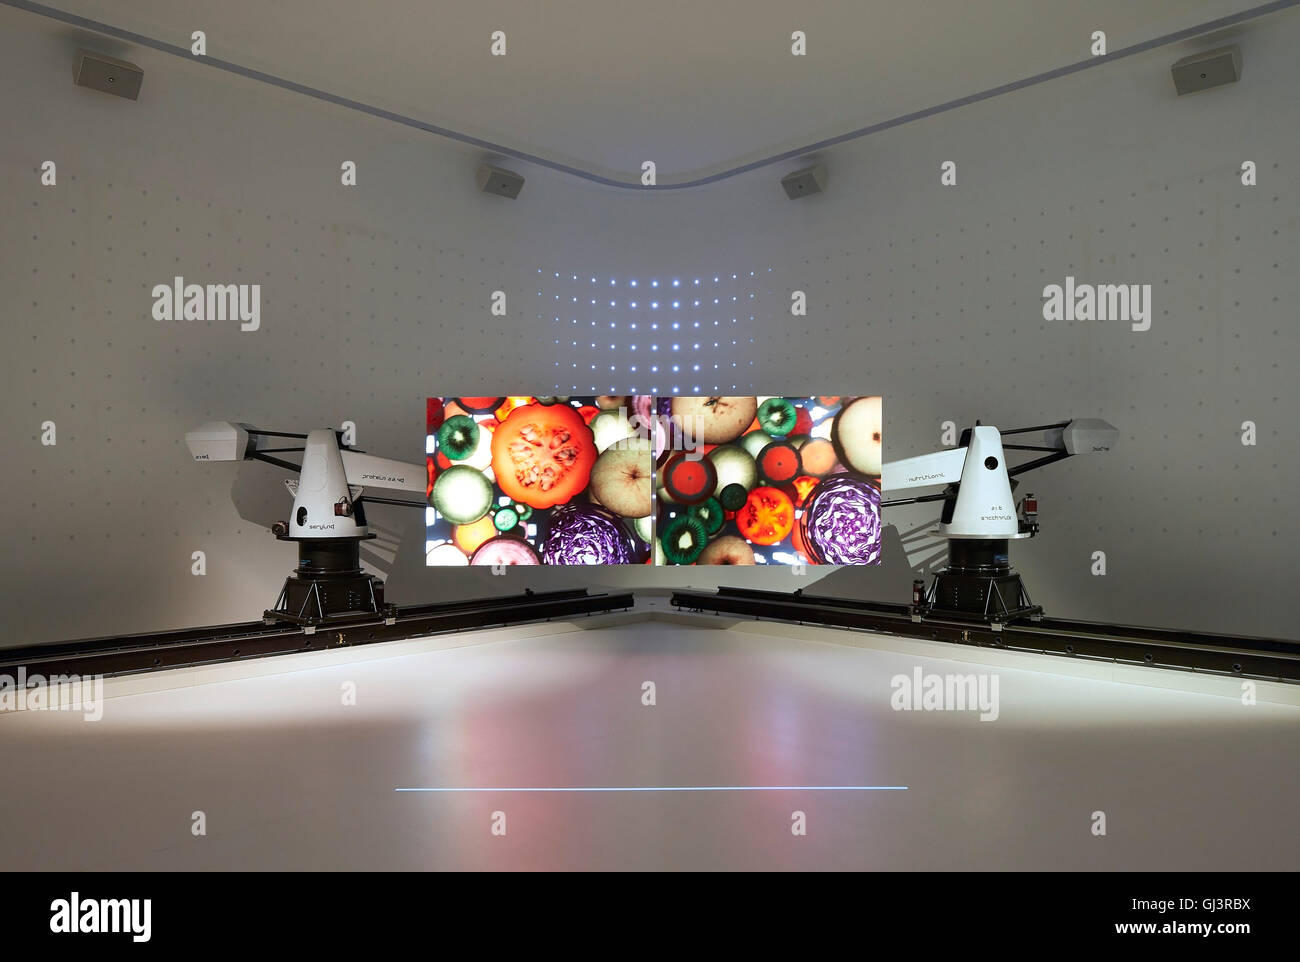 Exhibition with photo mural on food issues. Milan EXPO 2015, Korea Pavilion, Milan, Italy. Architect: BCHO Architects, - Stock Image